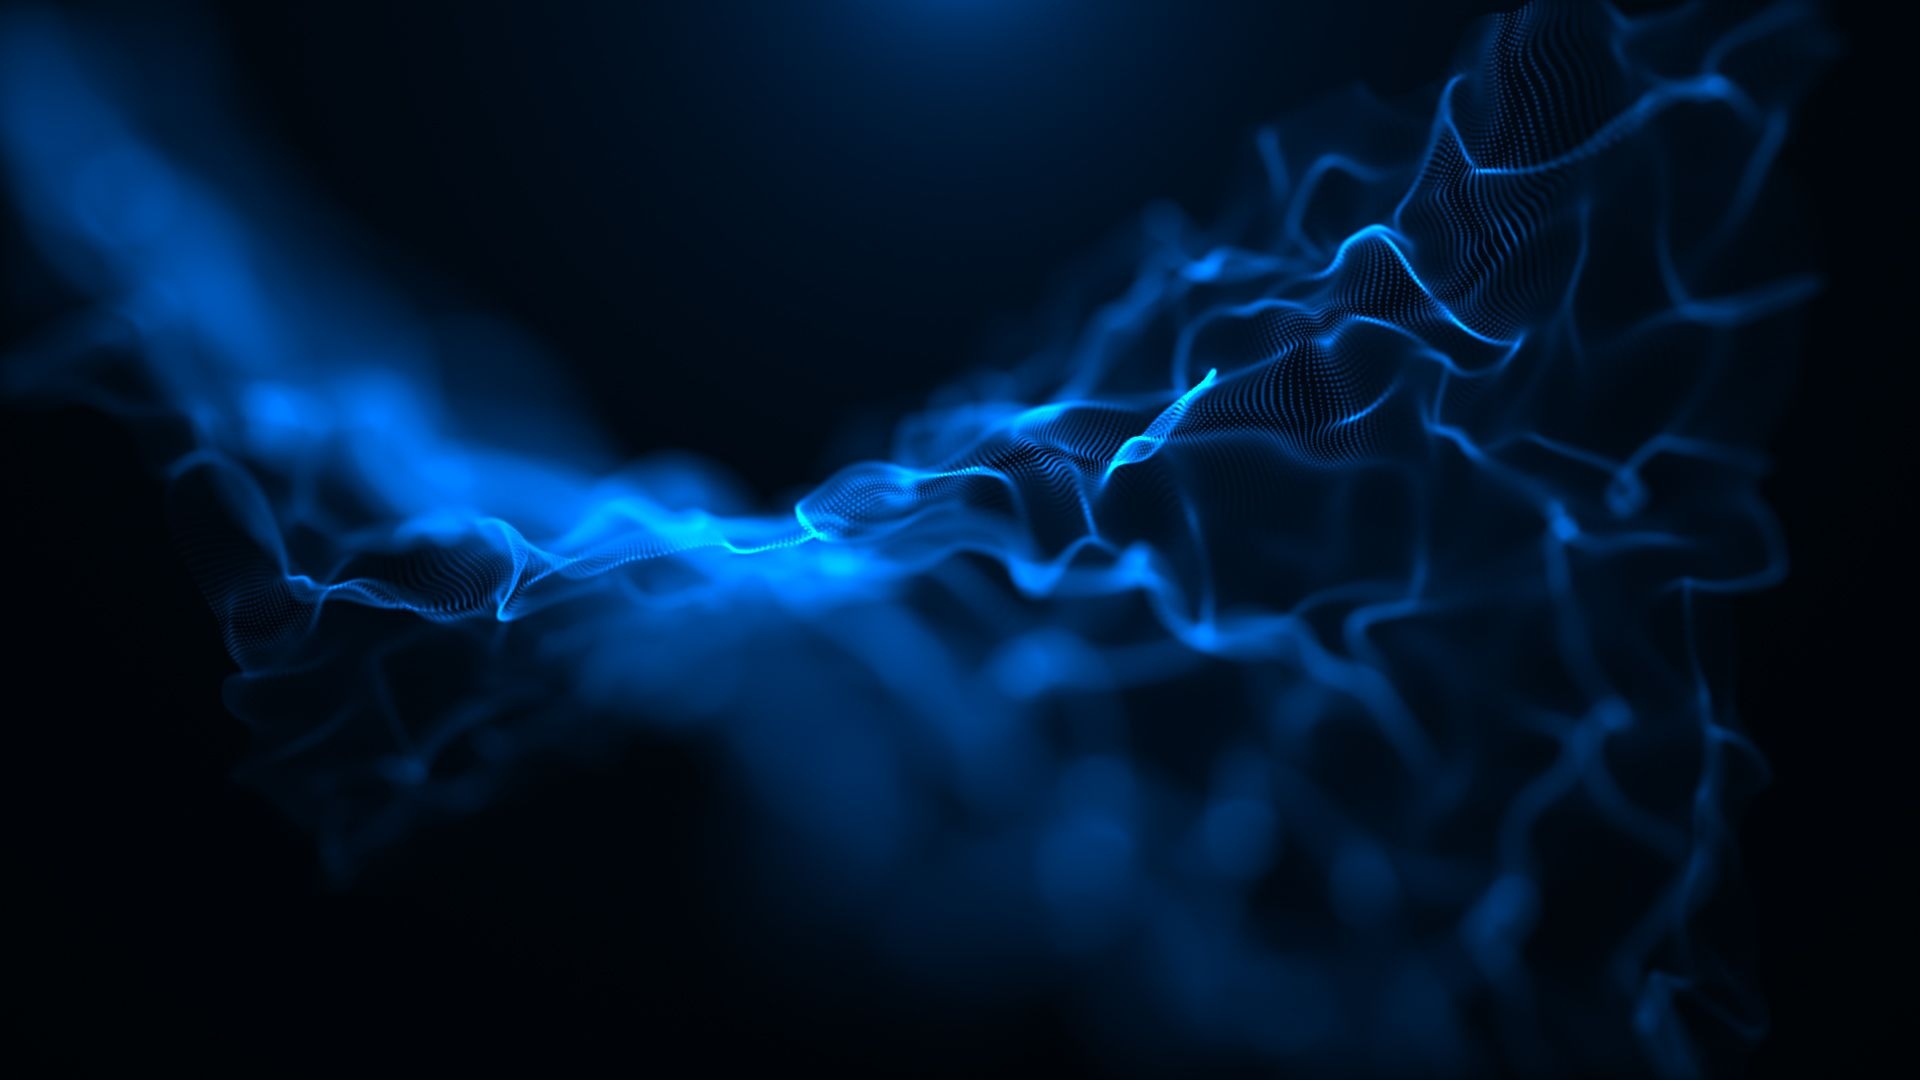 Abstract Blue Form desktop wallpaper nr 62180 by emil1213 1920x1080